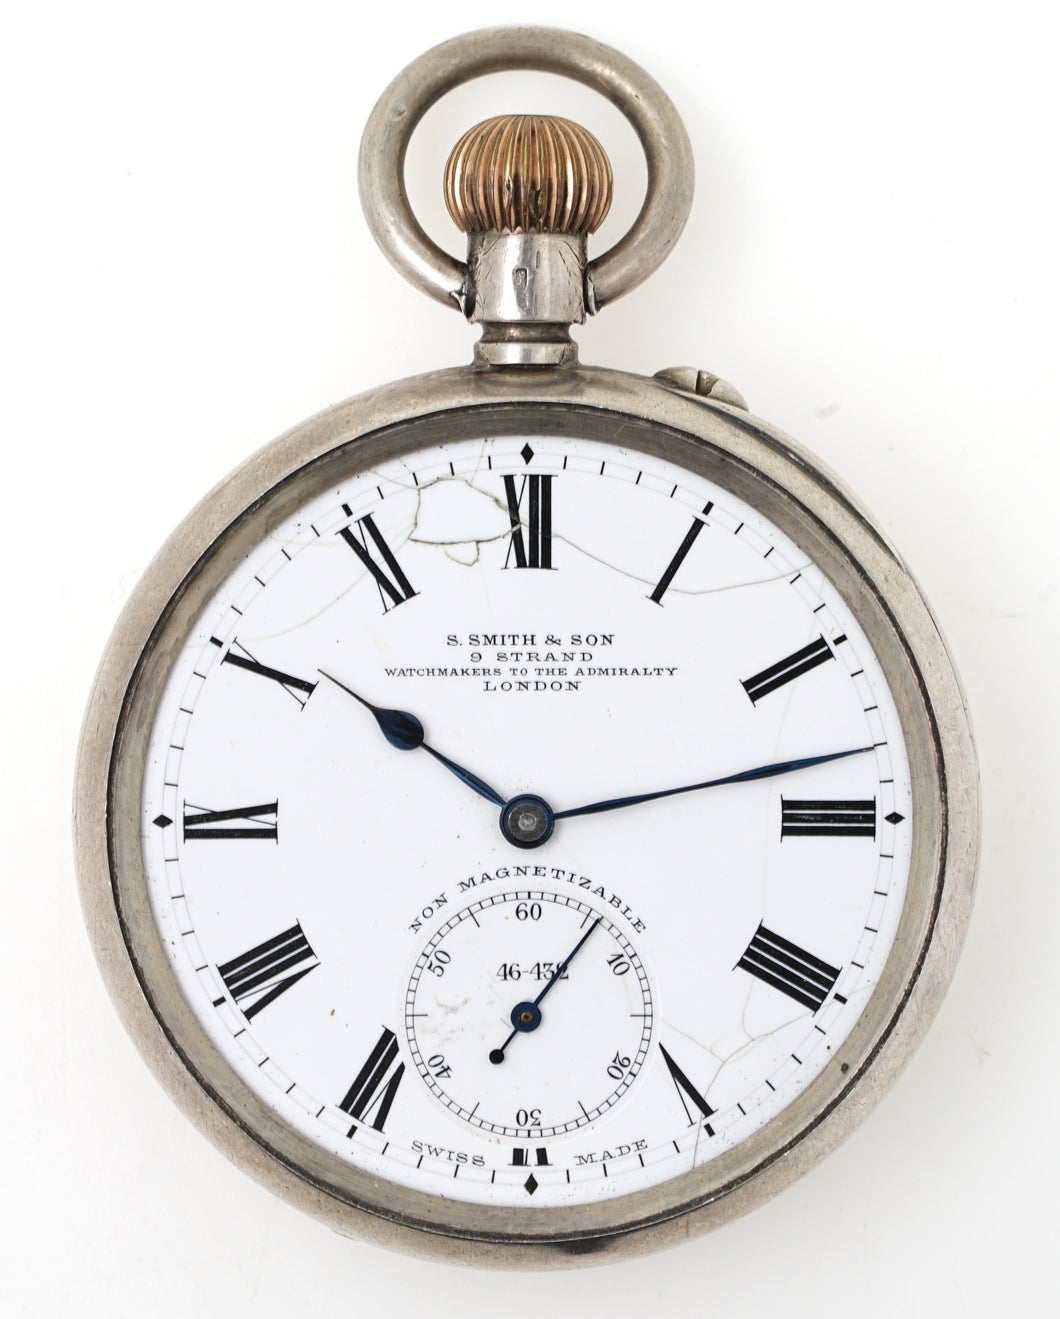 SMITHS EARLY S SMITH & SON LONGINES SILVER OPEN FACED POCKET WATCH 1904